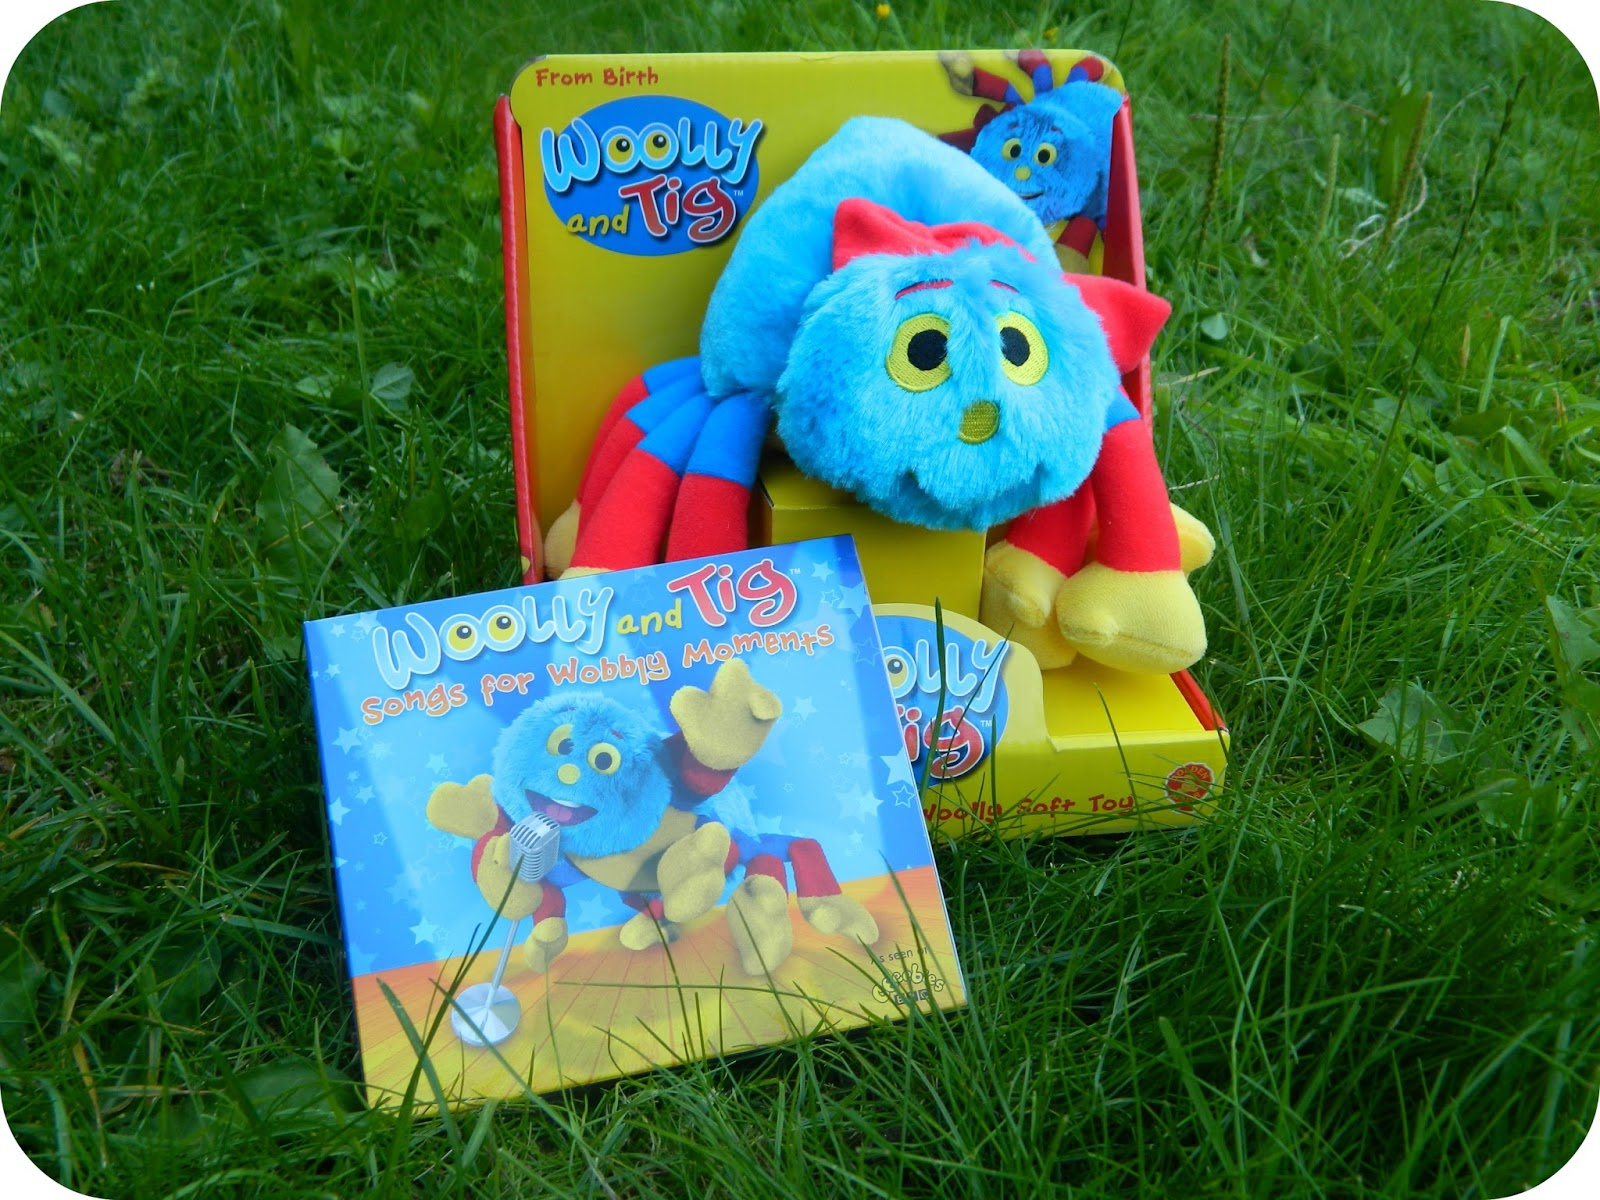 Woolly & Tig Songs for Wobbly Moments CD